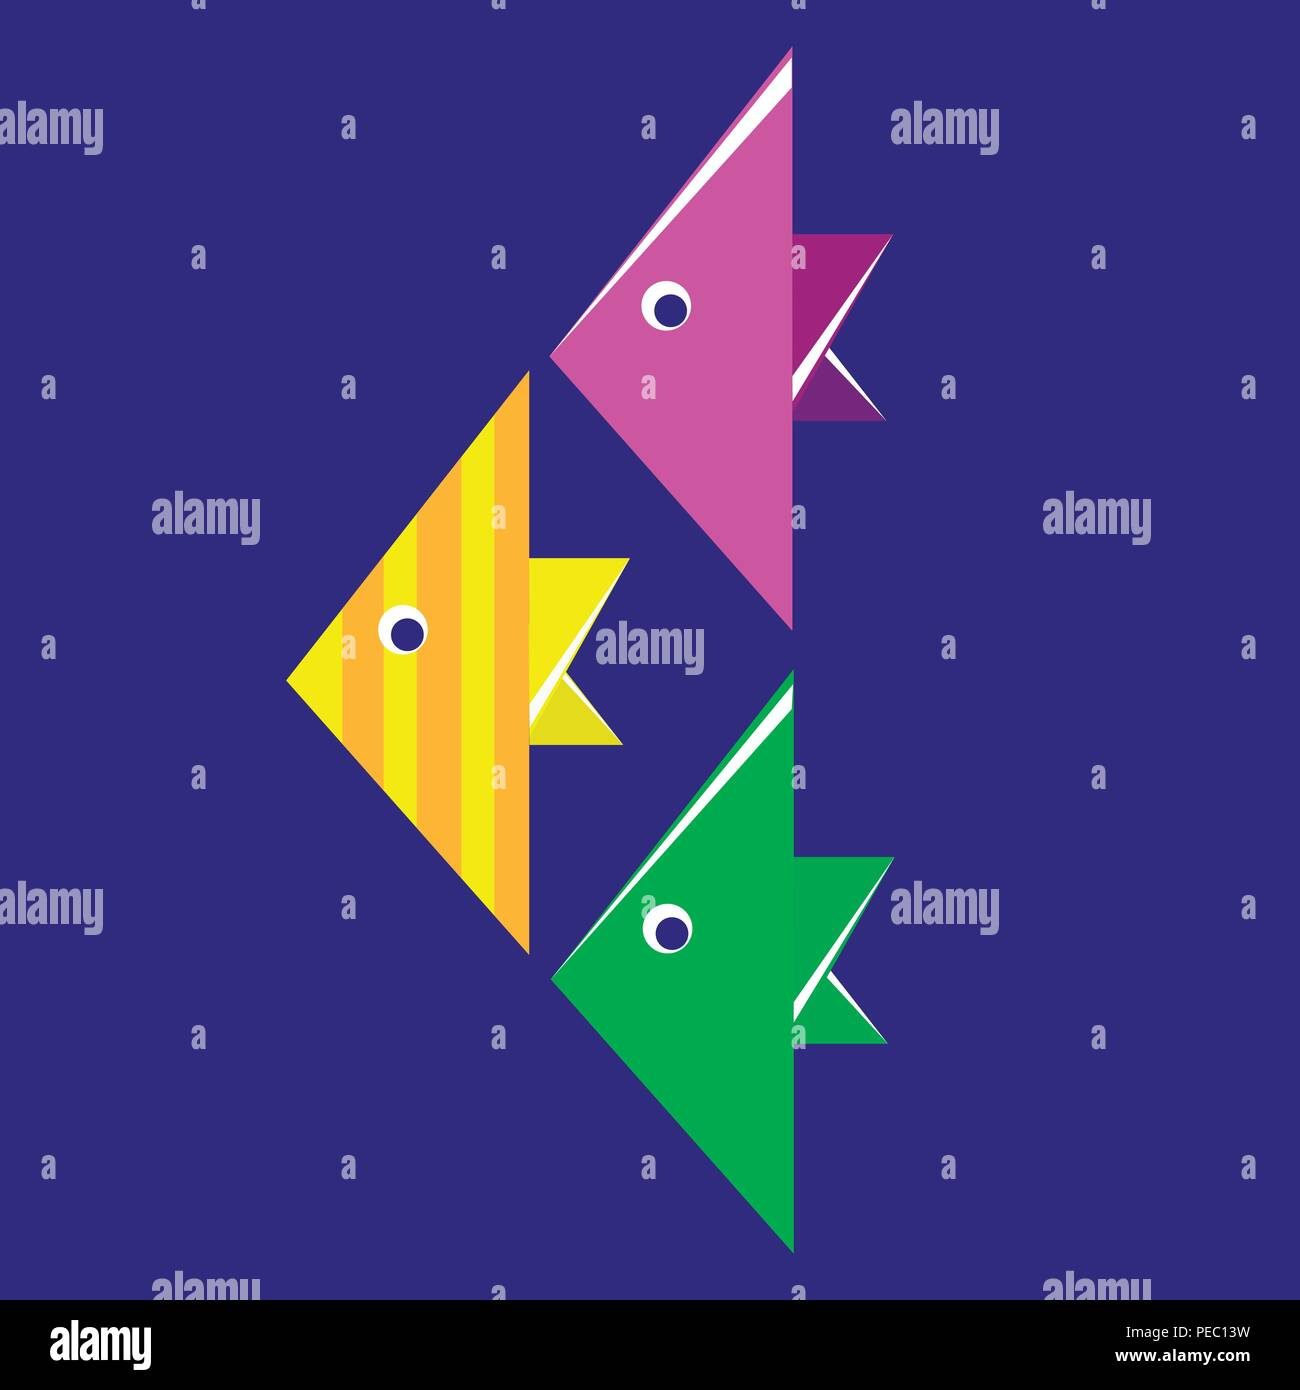 Origami paper multi-colored fishes - Stock Image